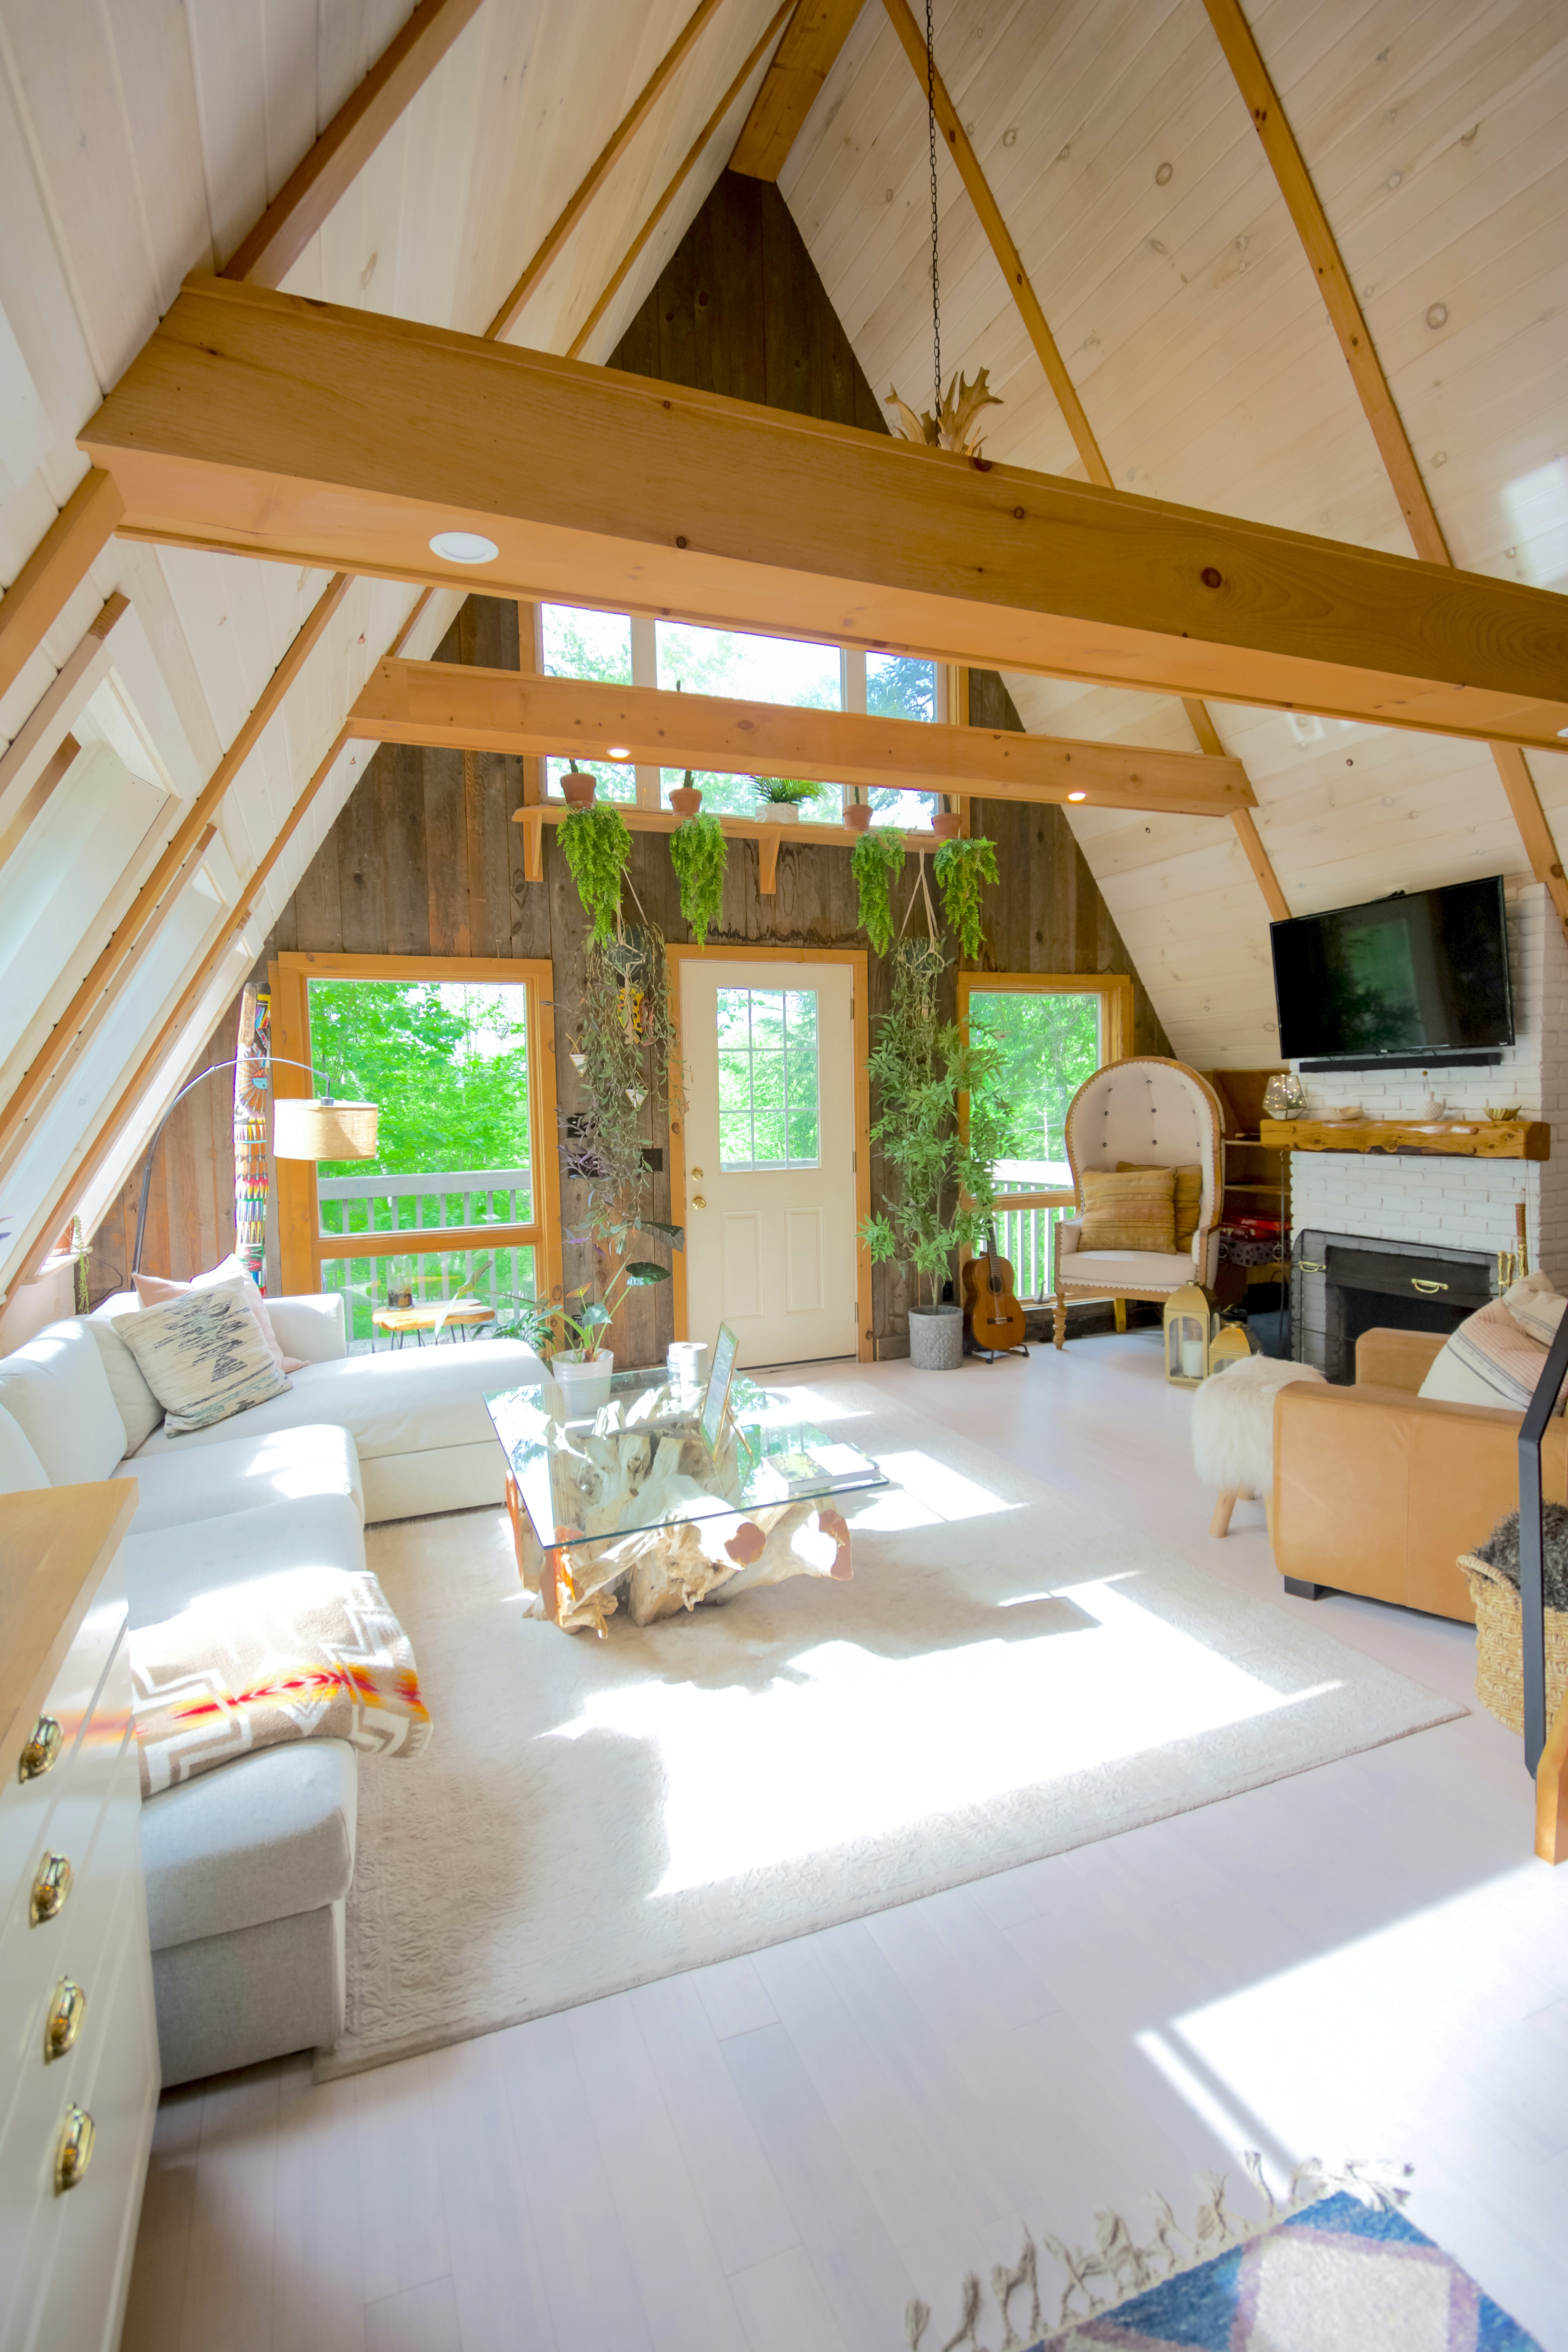 An attic living room with a couch, a tv, chairs